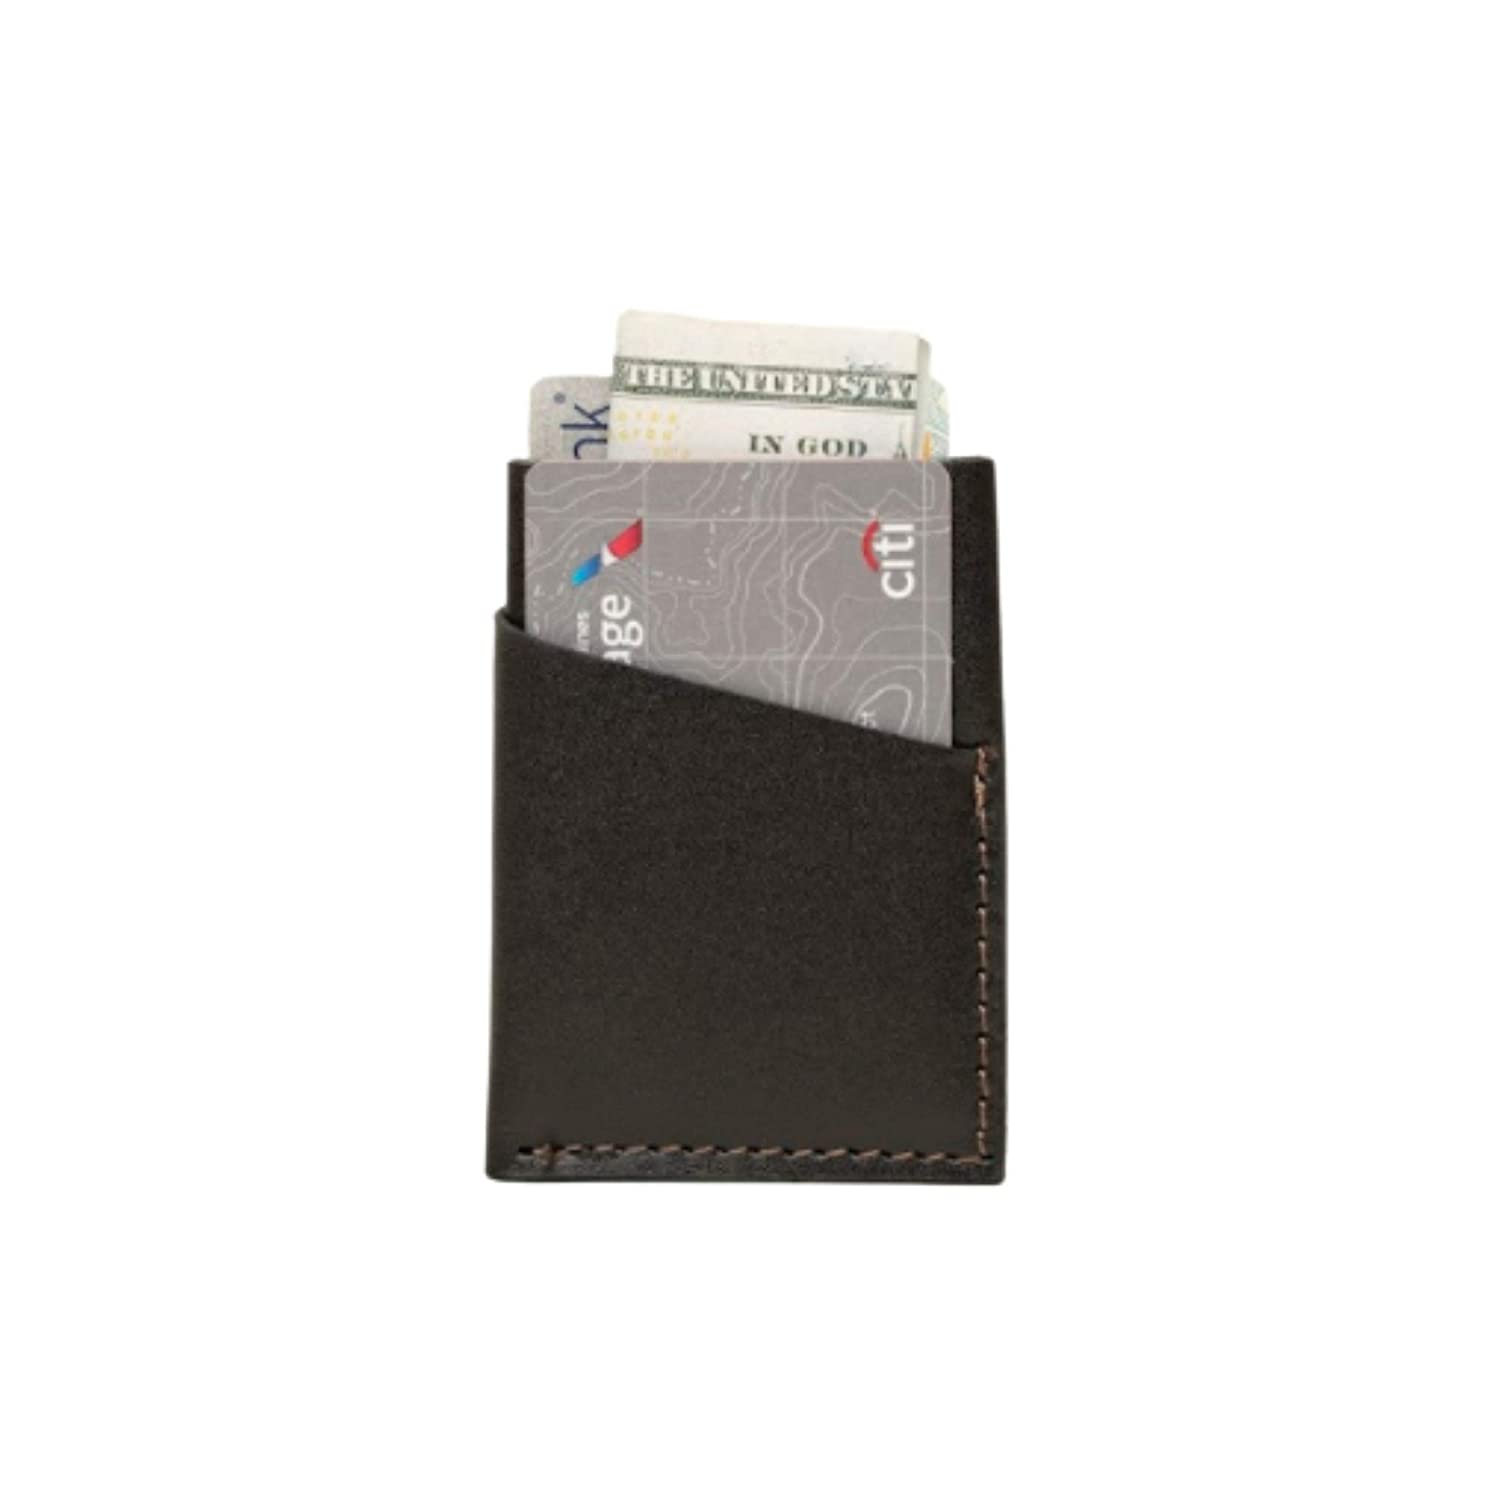 Card Holder - Cowhide Leather Organic Dyed 100% Handmad Root Max 67% Lowest price challenge OFF